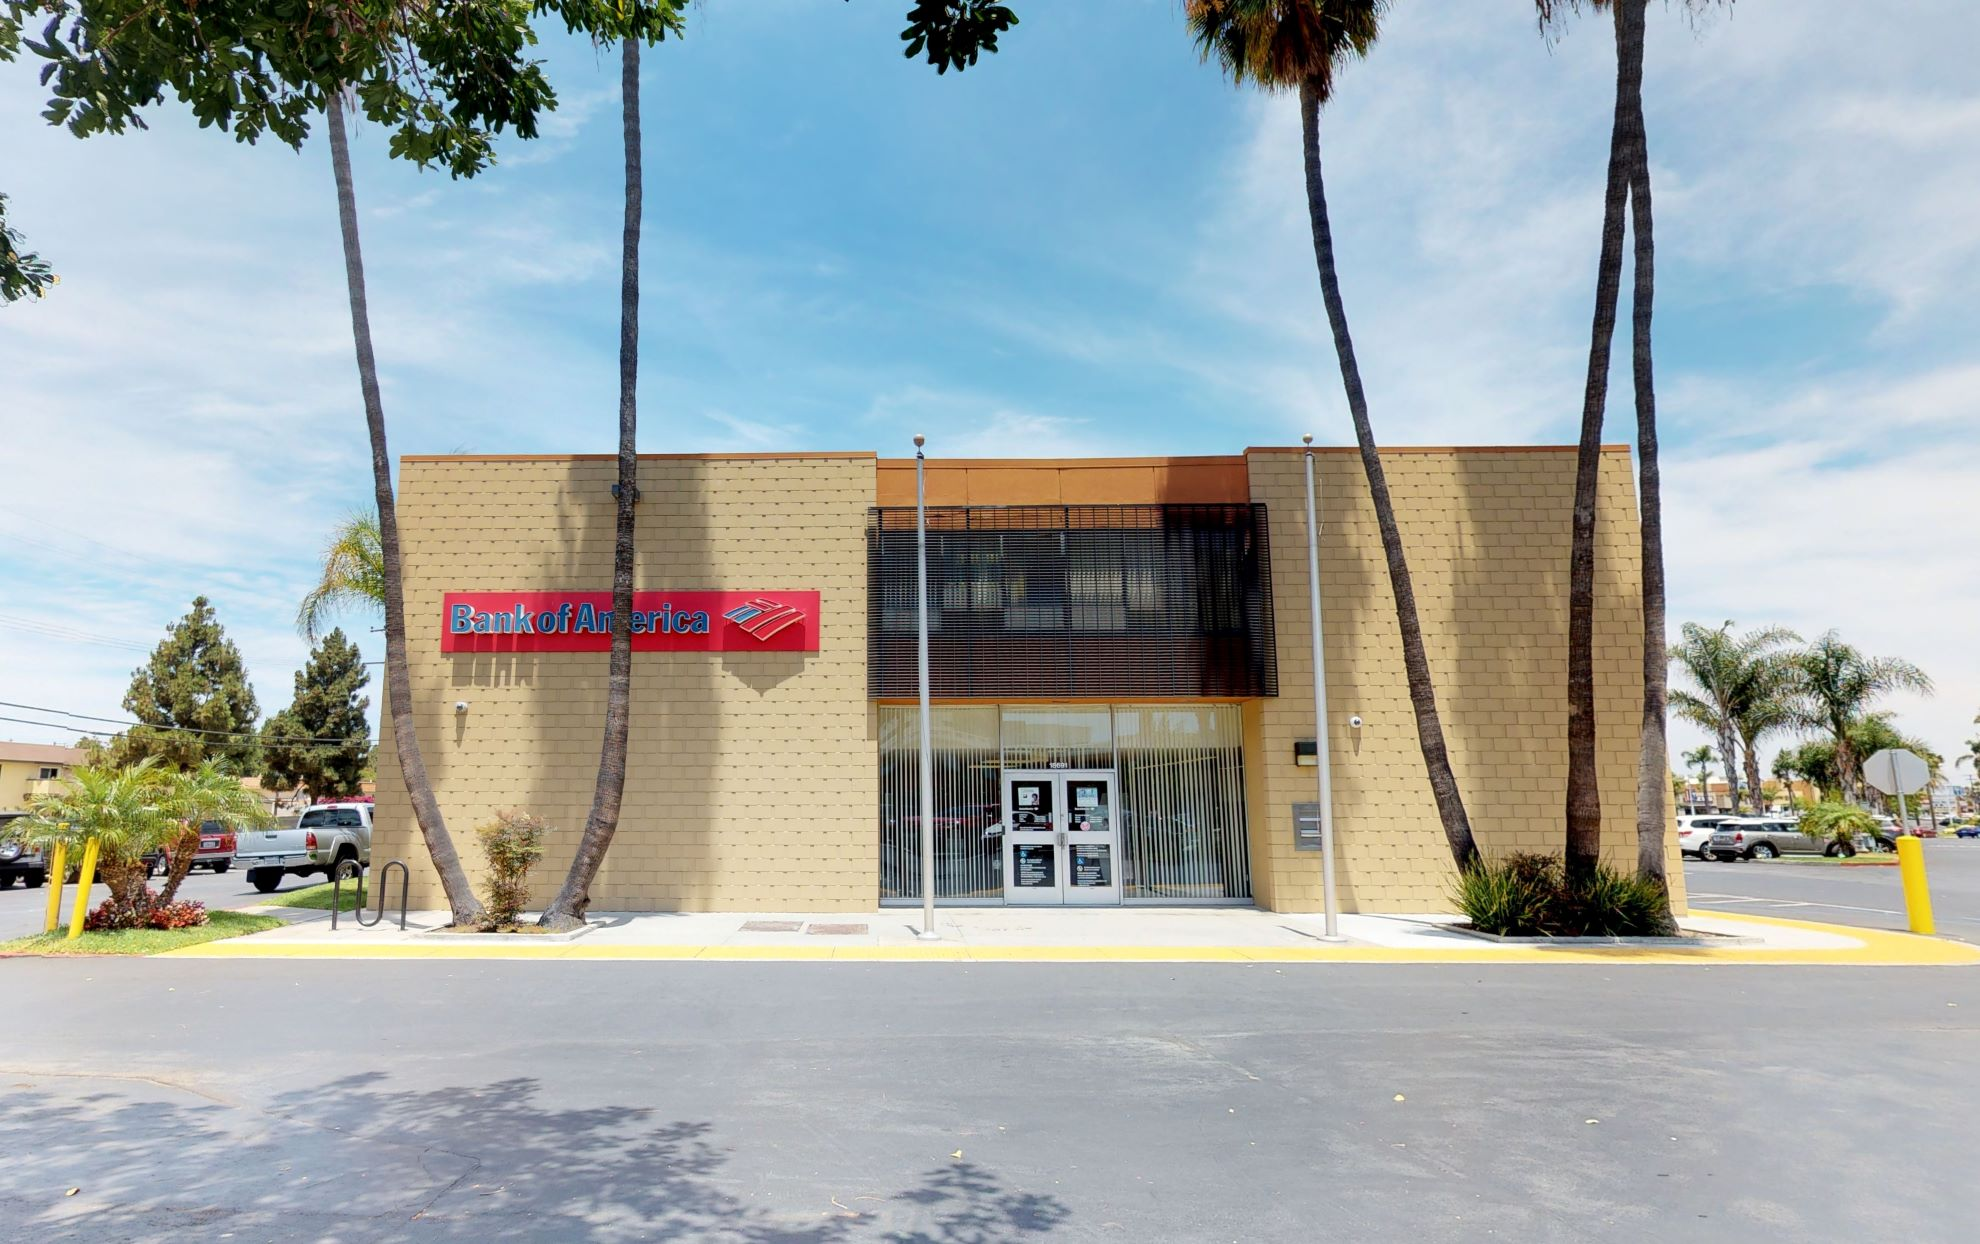 Bank of America financial center with walk-up ATM | 18691 Main St, Huntington Beach, CA 92648